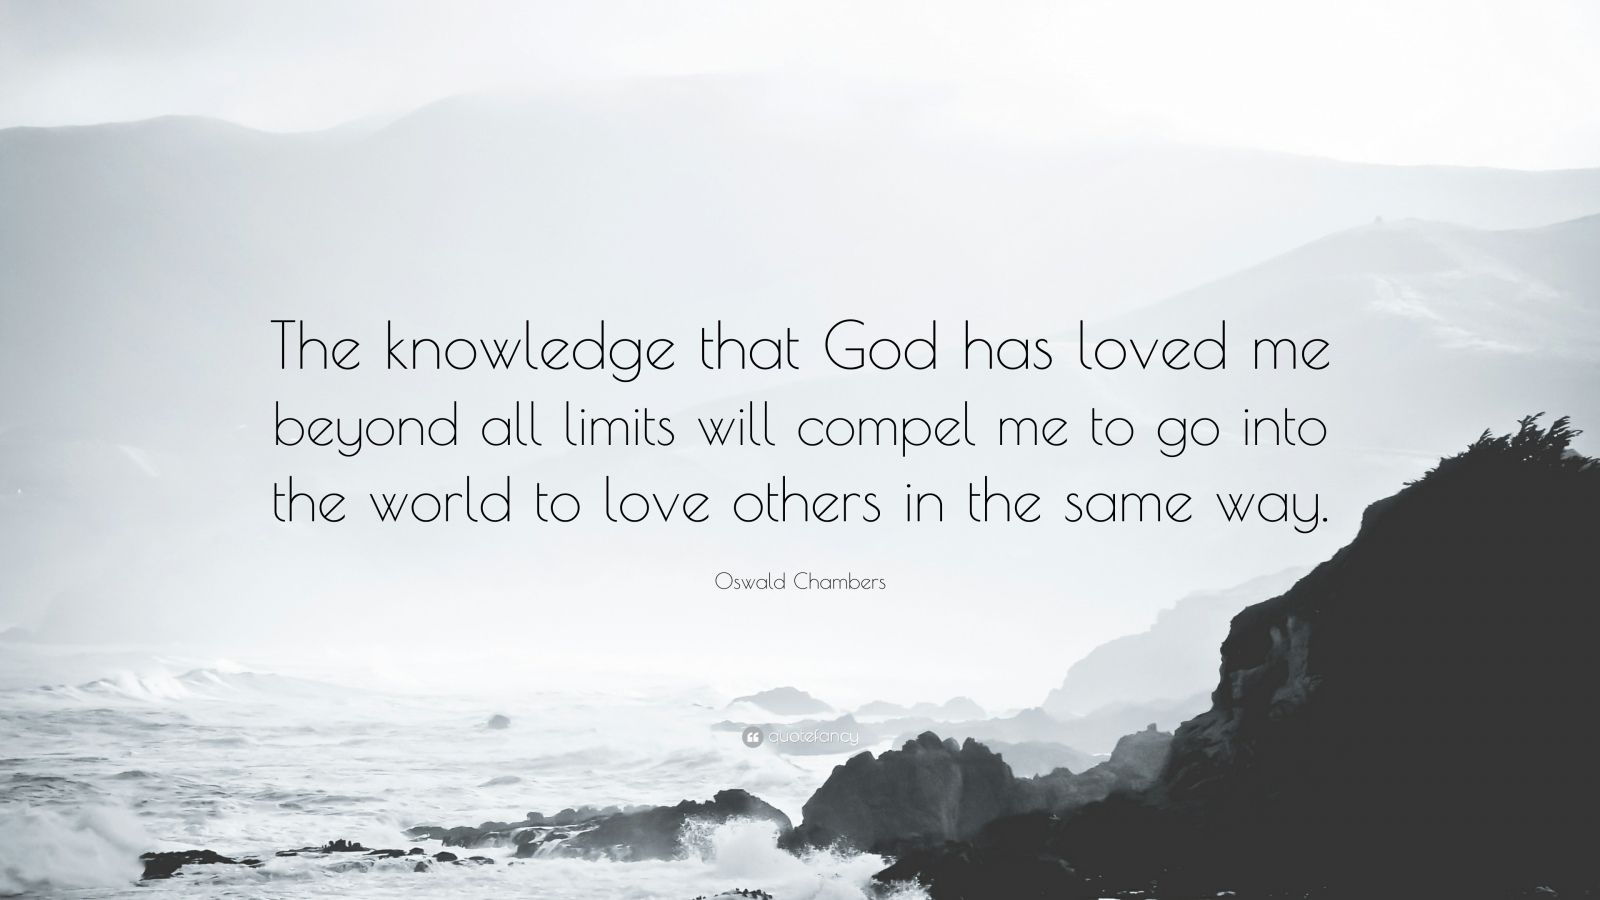 """Oswald Chambers Quote: """"The knowledge that God has loved me beyond all limits will compel me to go into the world to love others in the same way."""""""